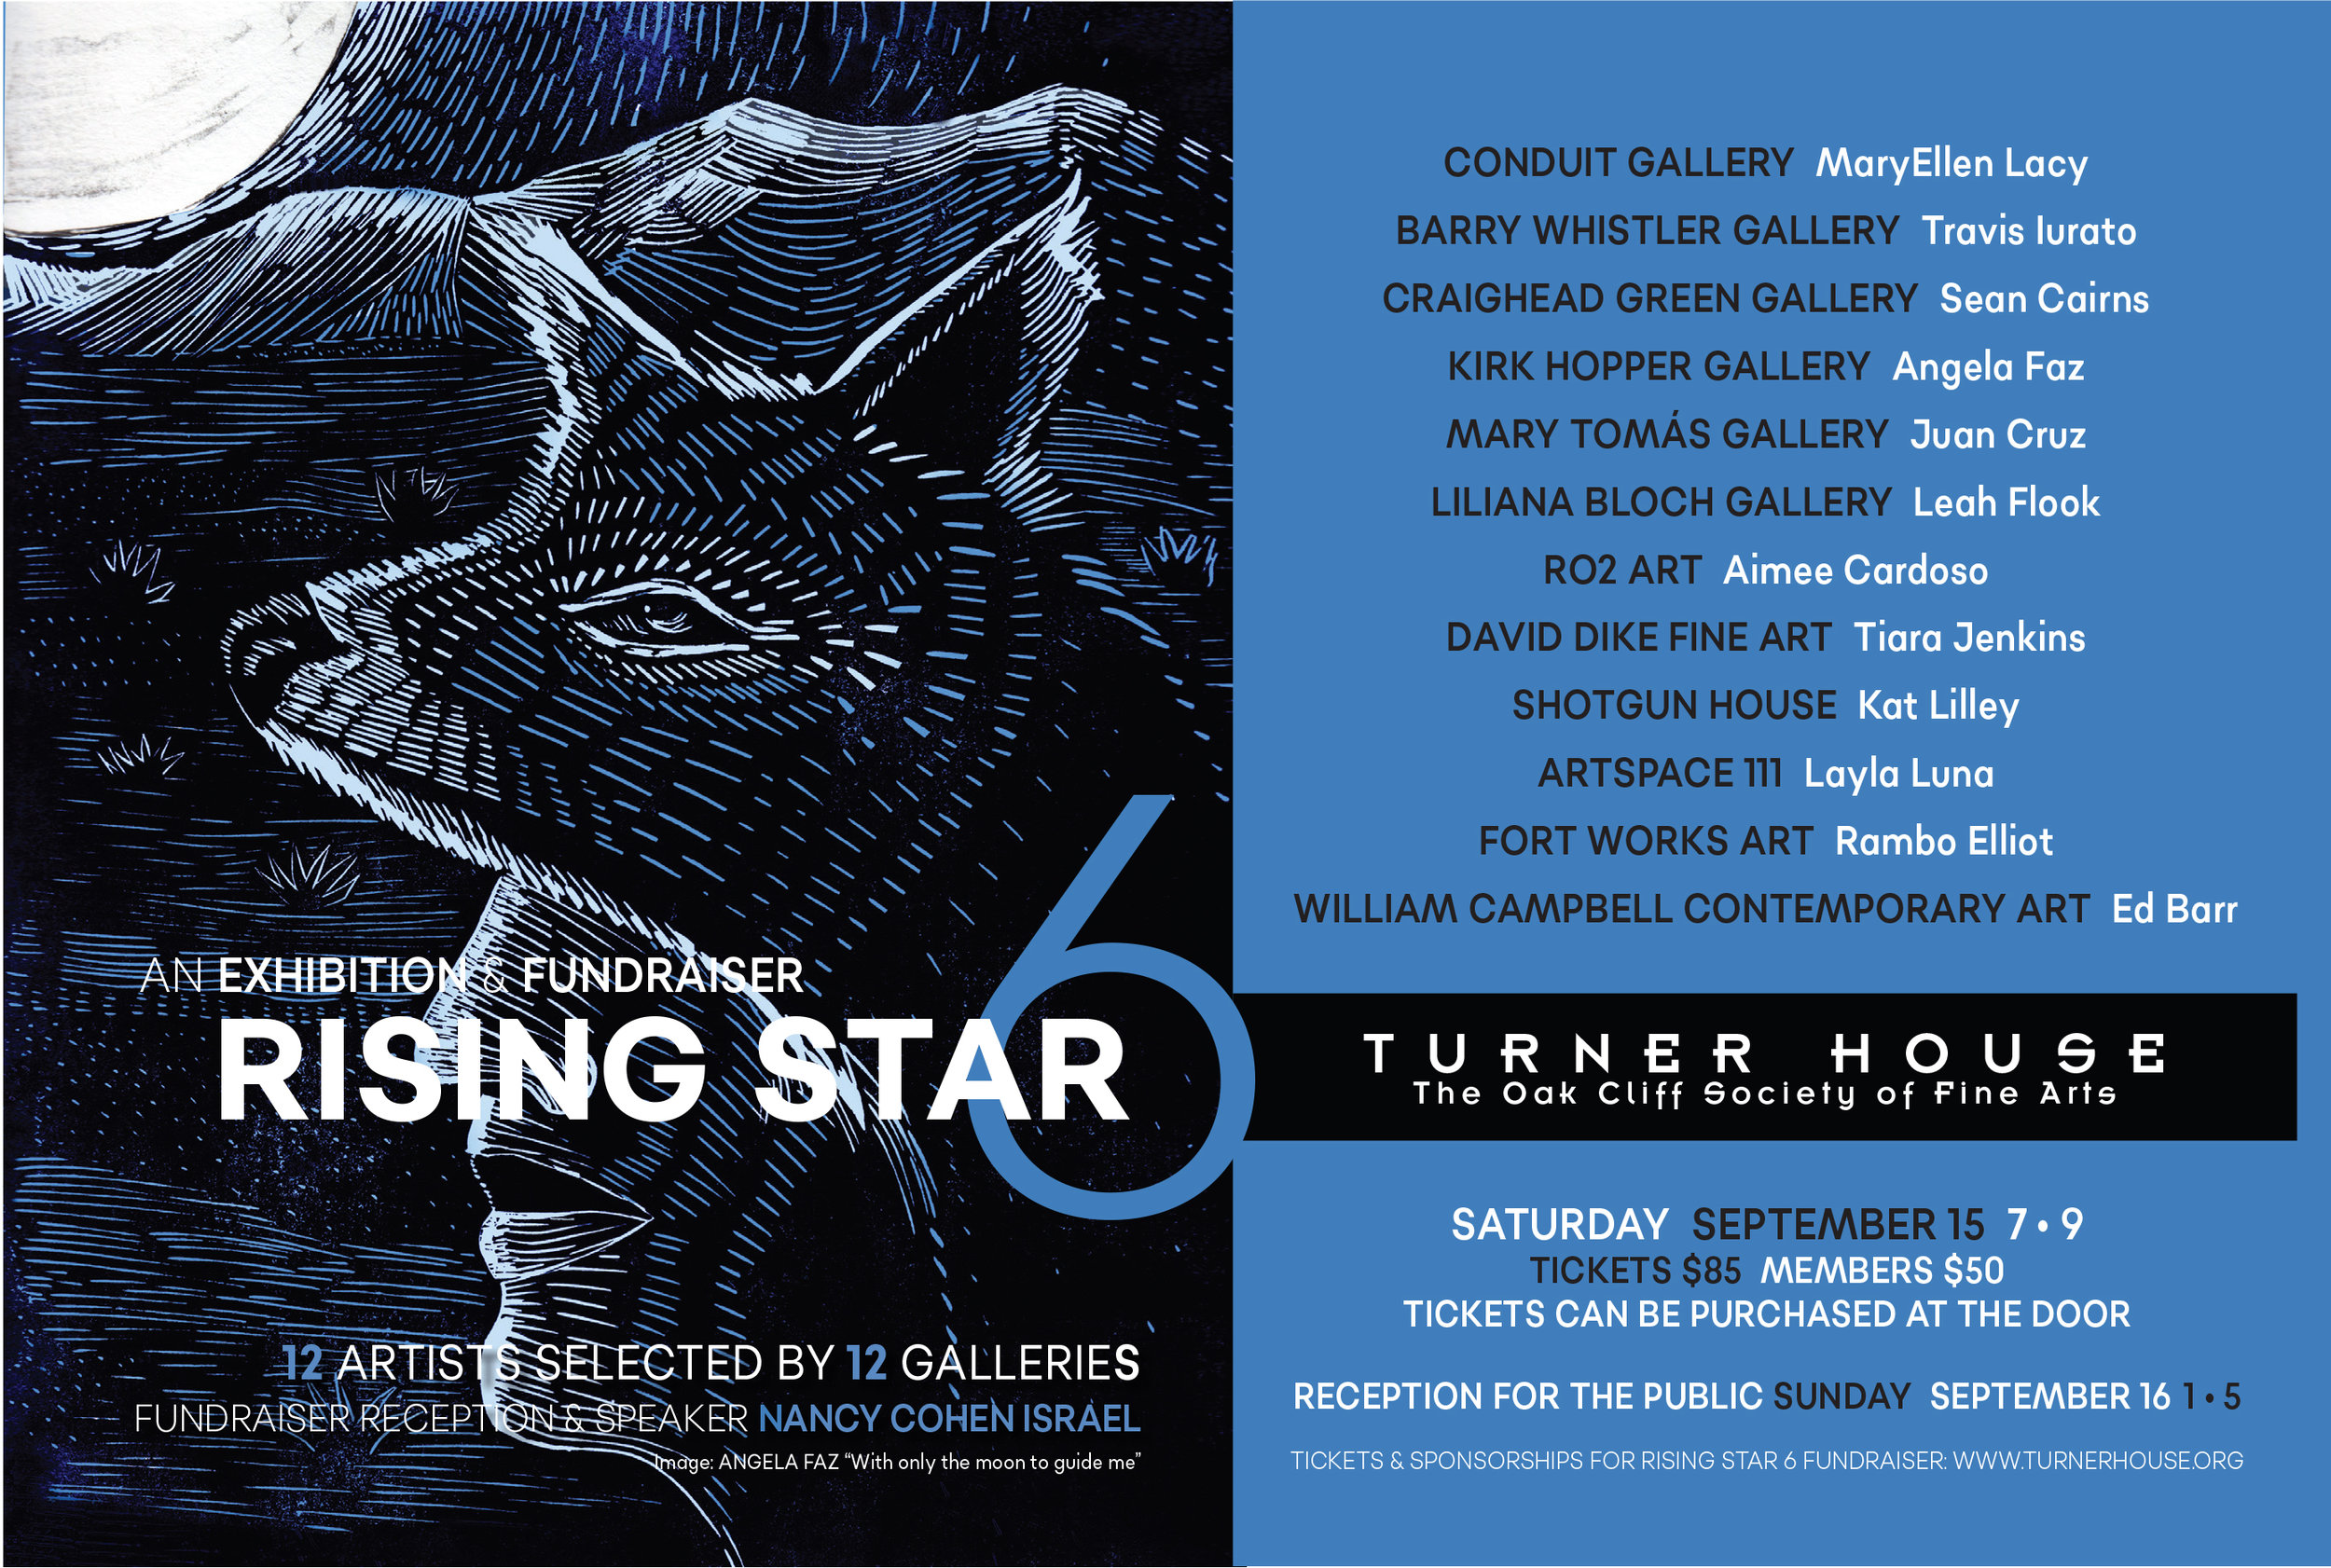 Rising Star Exhibition - Opening Reception: September 15, 2019, 7-9 PM Turner House- 401 N Rosemont Ave, Dallas, TX